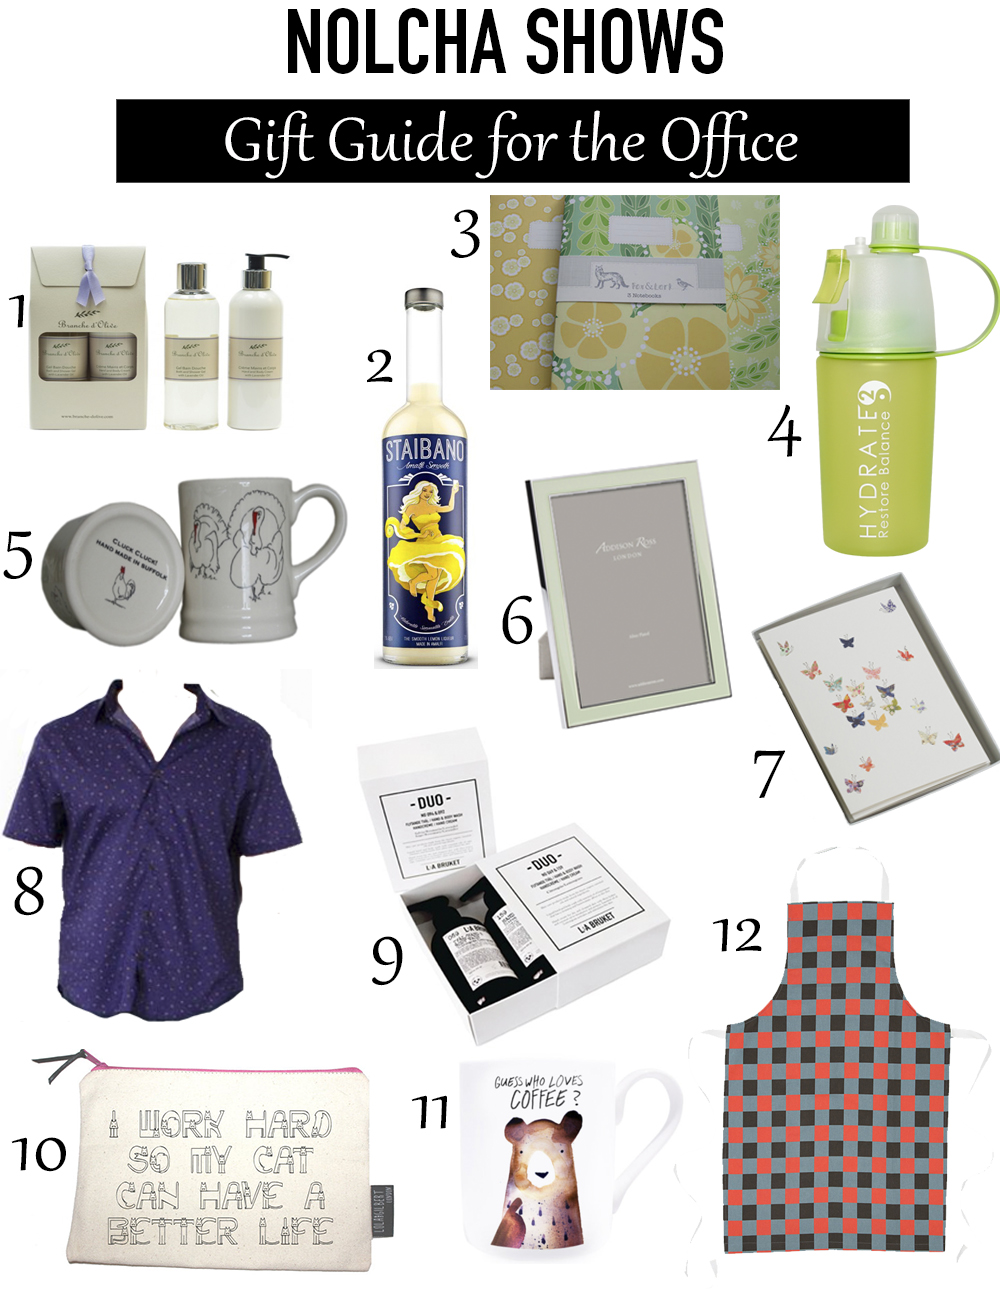 mmh-gift-guide-for-office